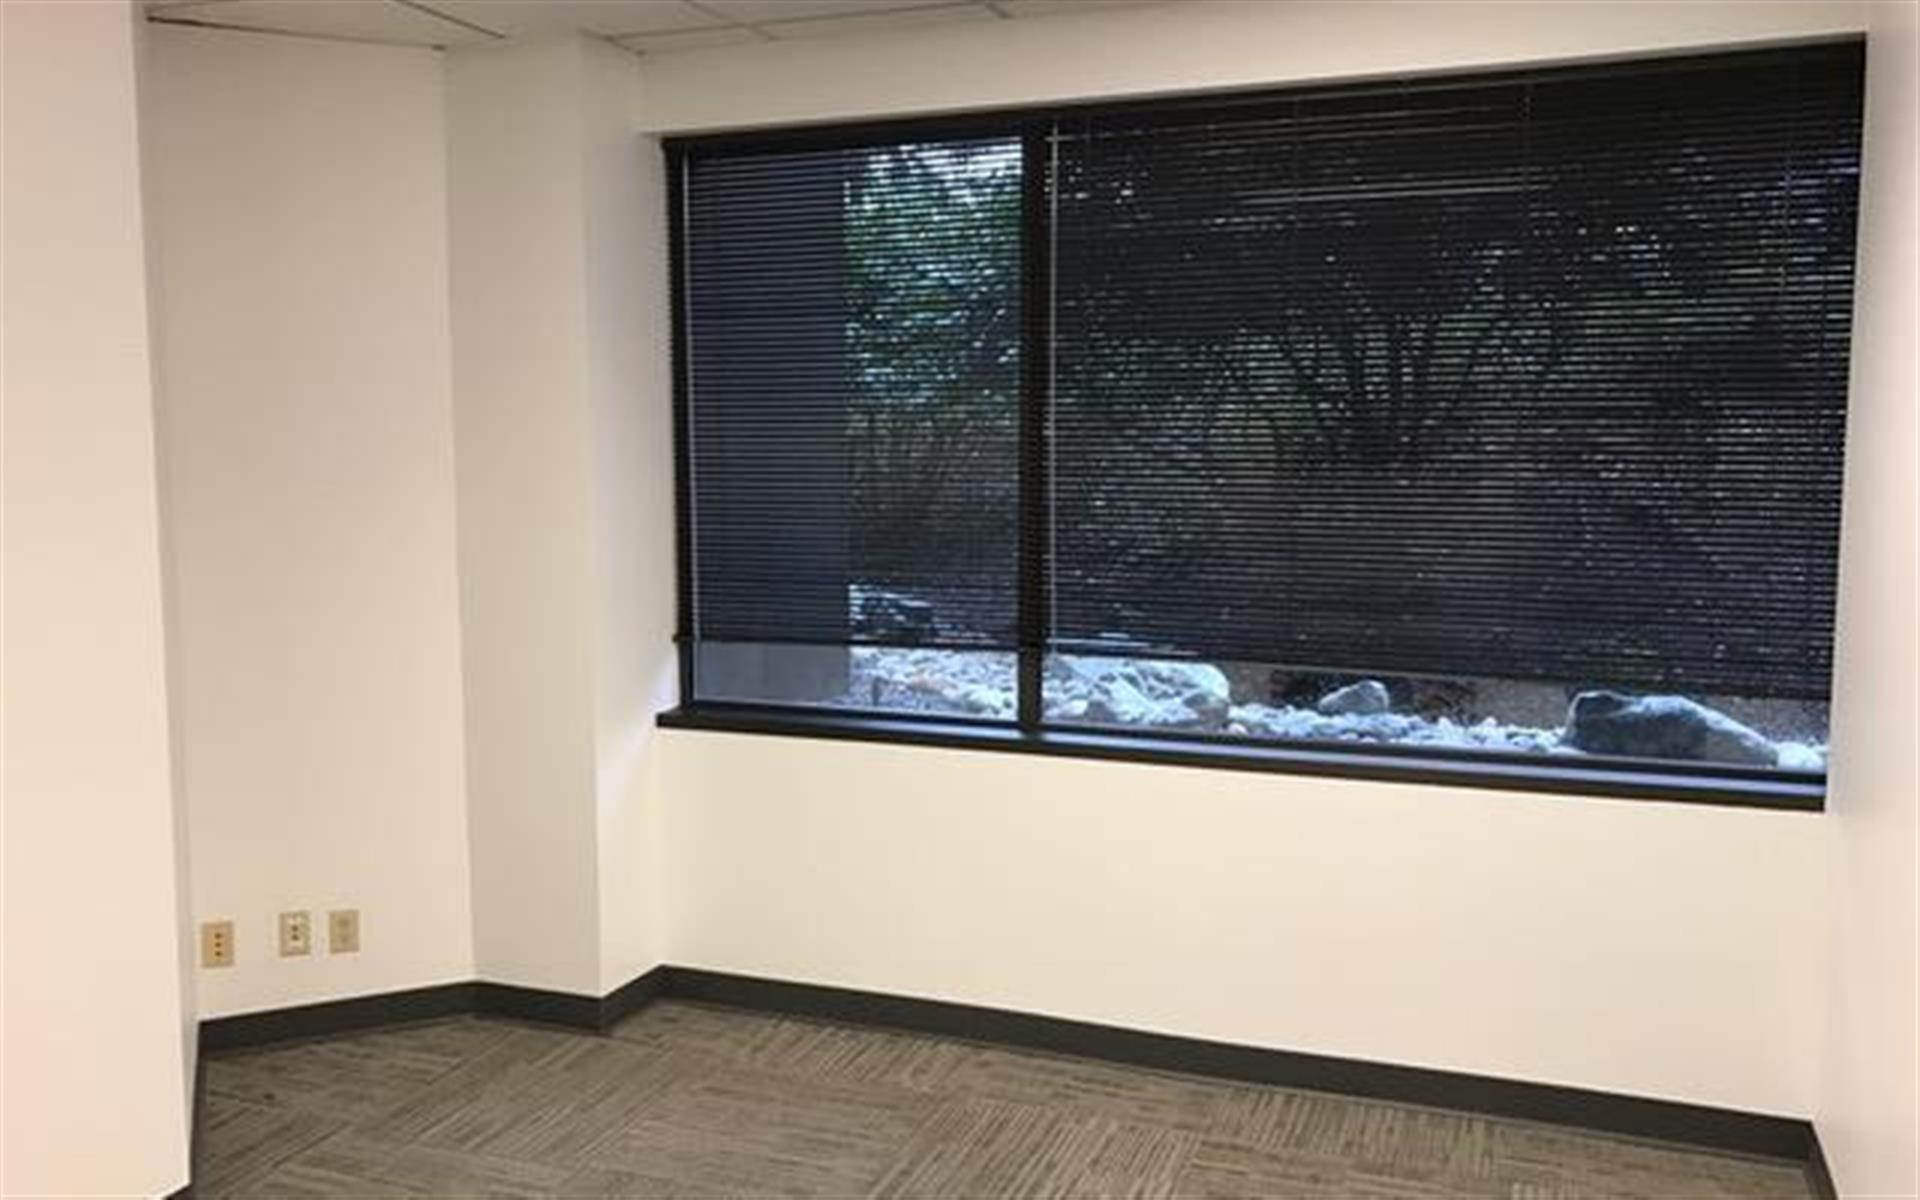 Office Space in Bellevue 405/520 Corridor - Window Office 1